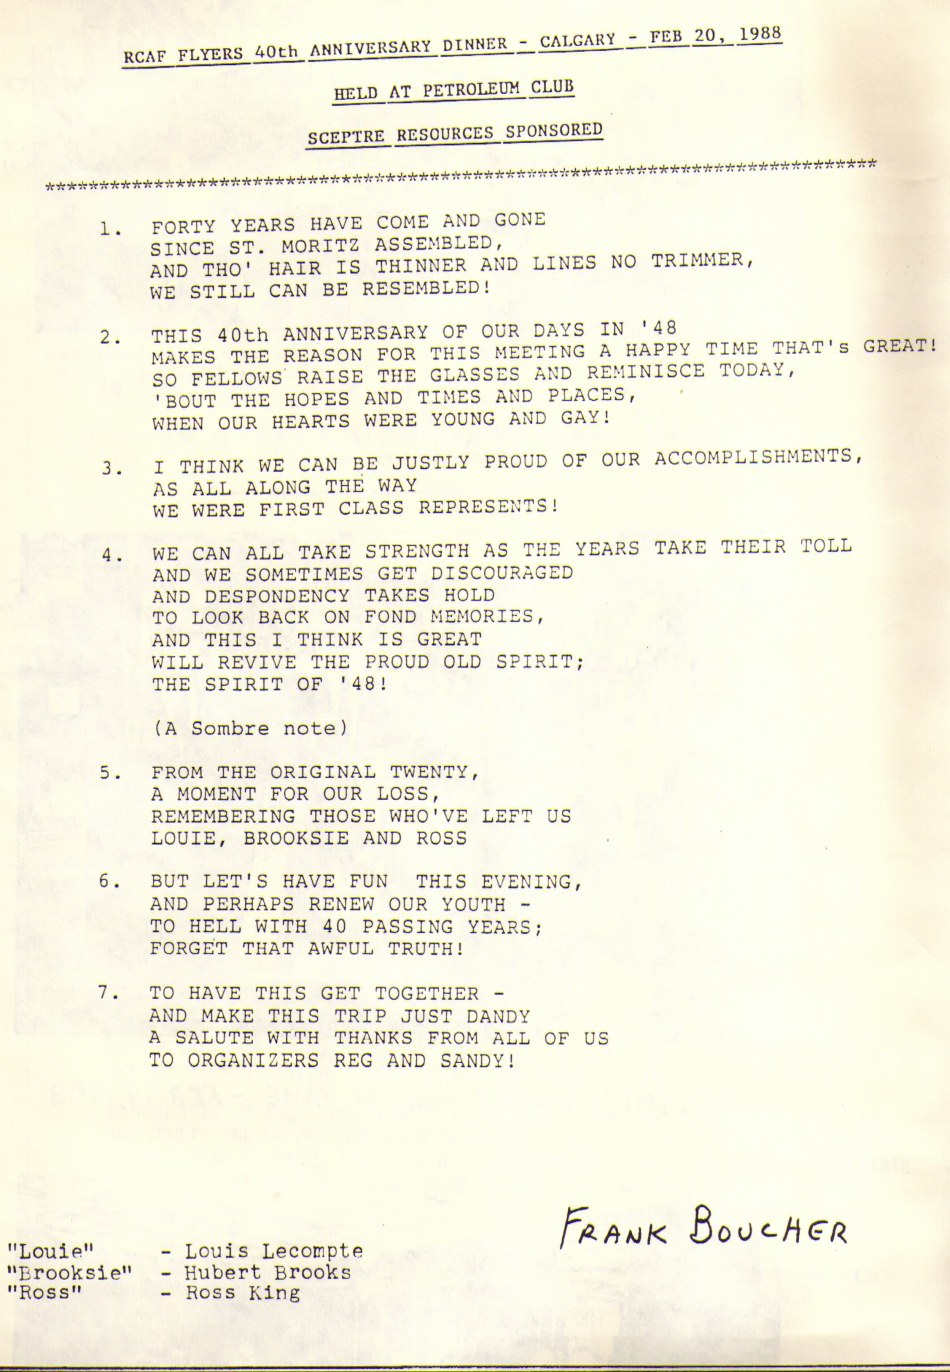 Image of 40th RCAF Flyer Anniversary Poem by Frank Boucher